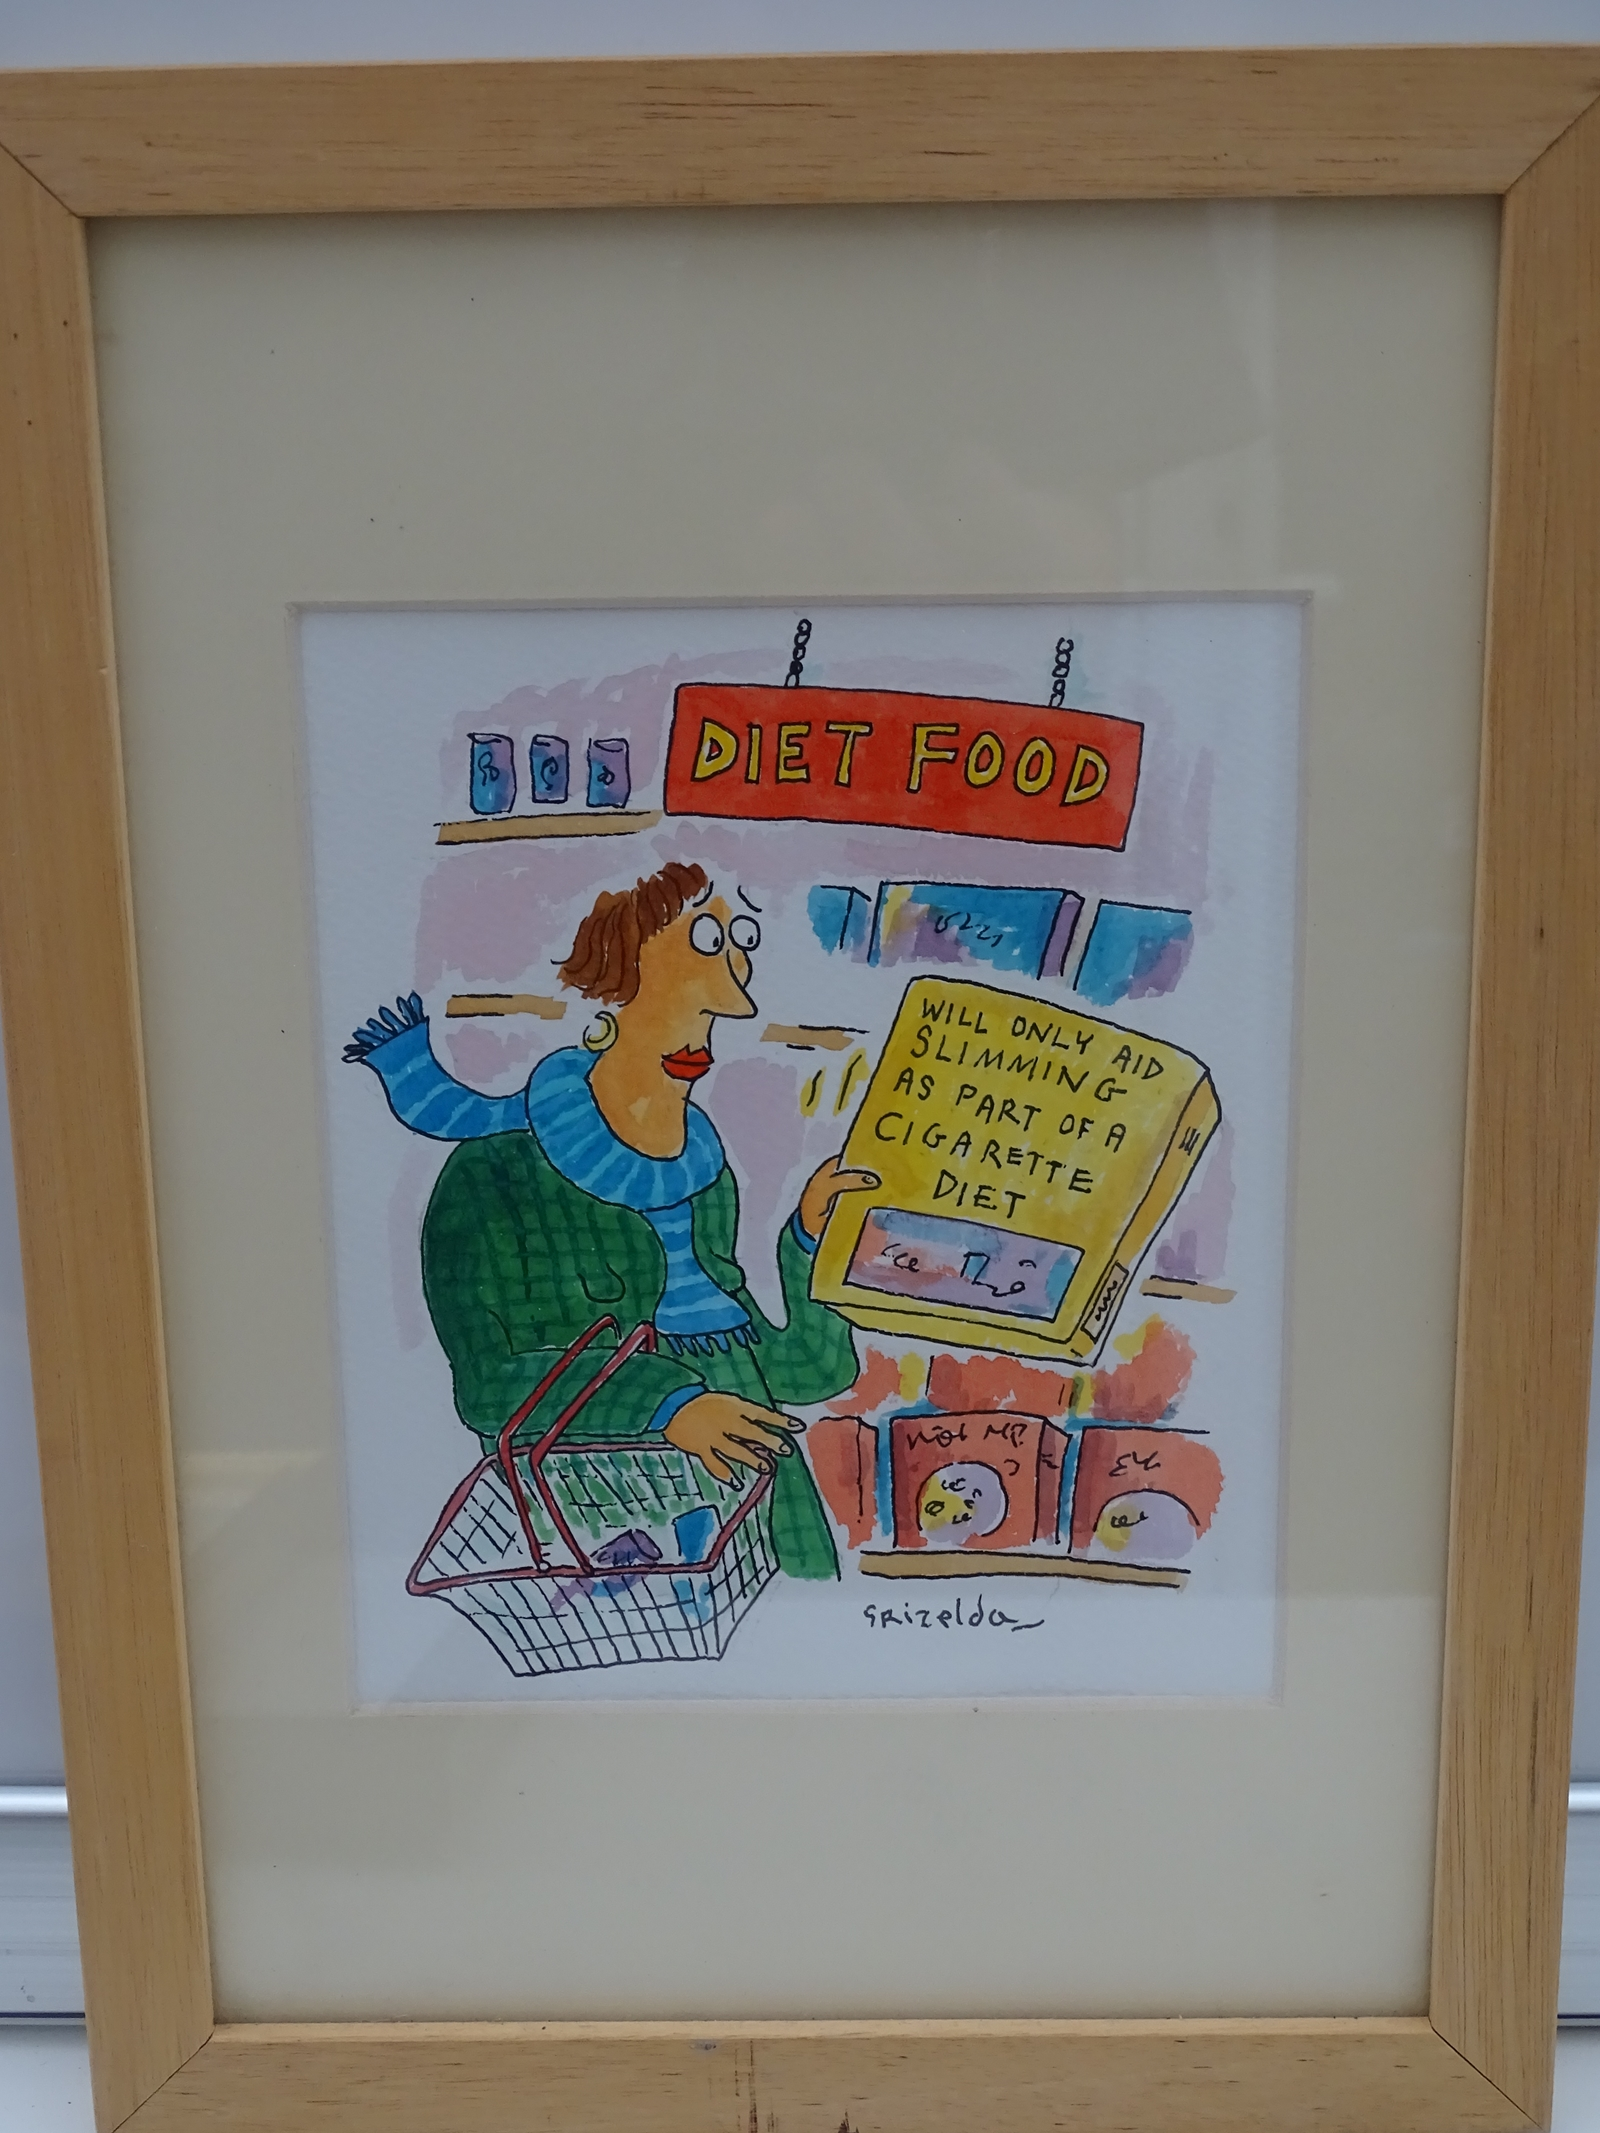 Lot 1157 - GRIZELDA: Full Colour - Framed and Glazed Original Satirical Cartoon Artwork